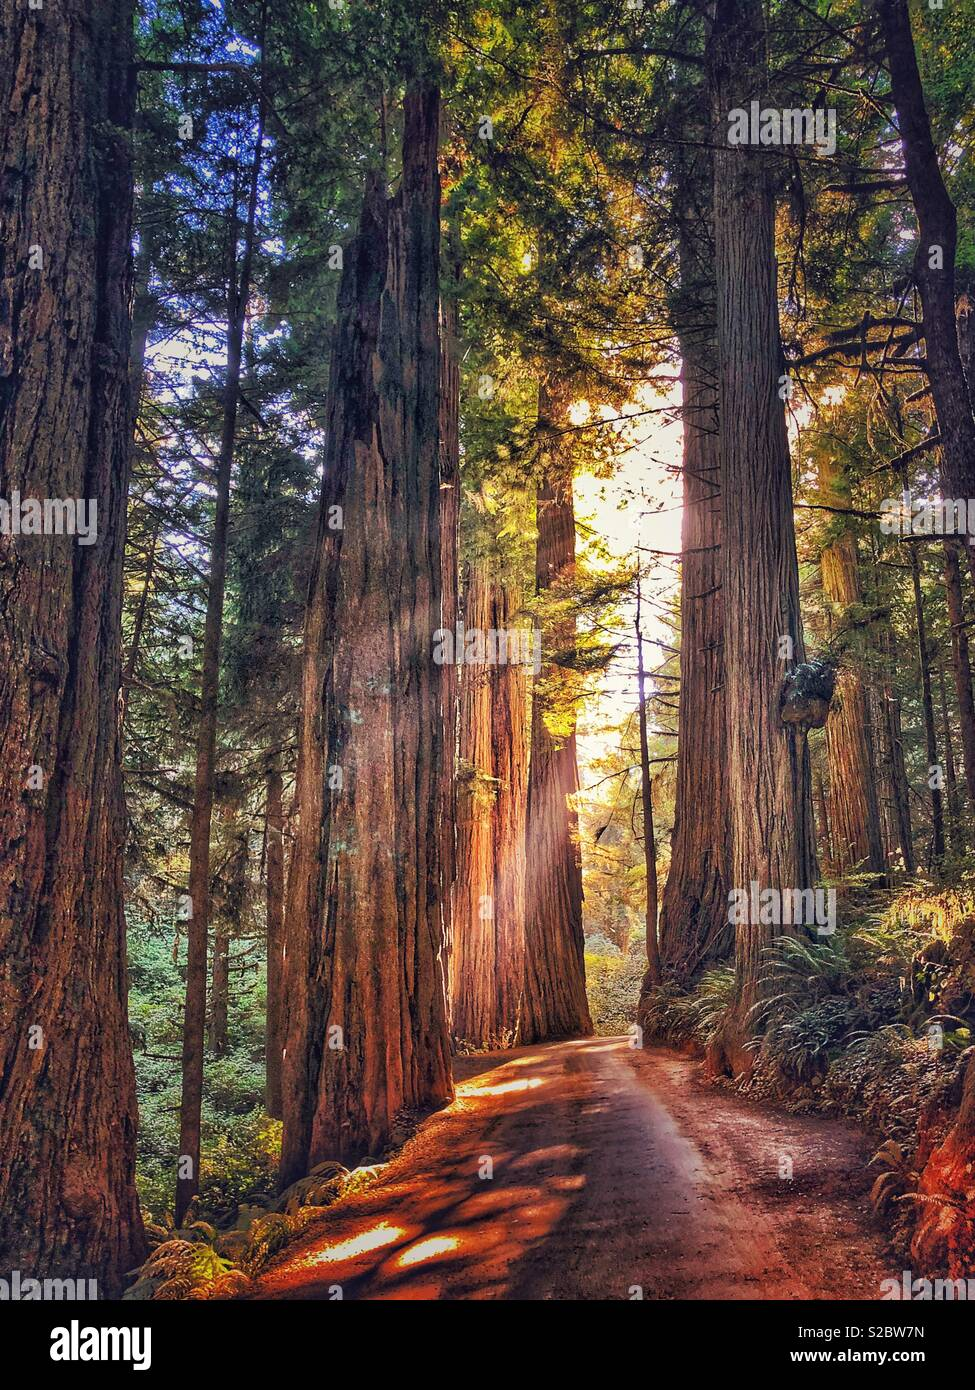 Road through the redwoods. - Stock Image